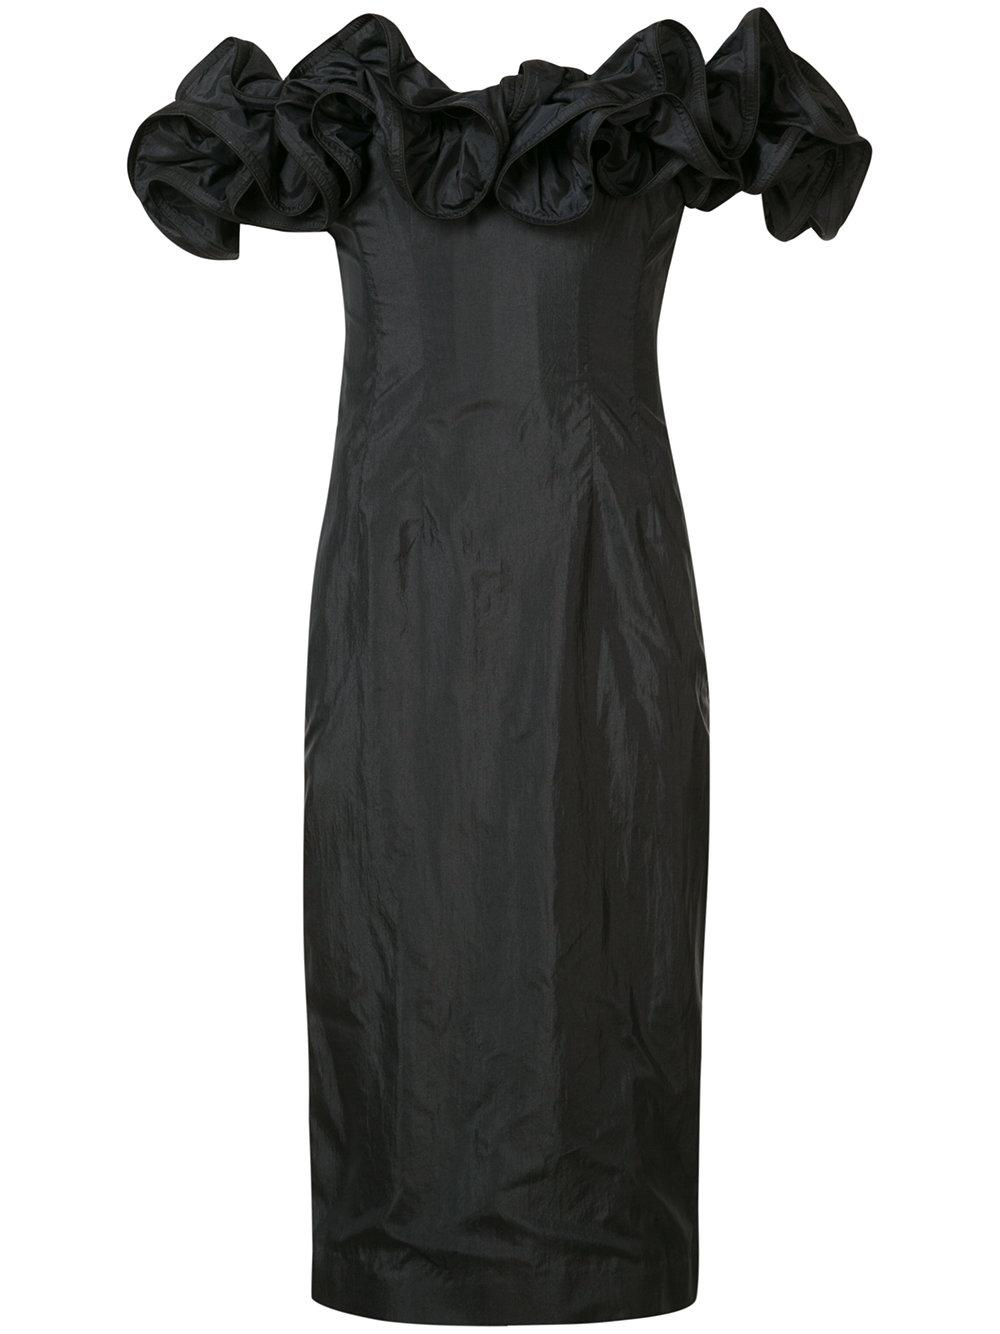 Black Lyst Collection In Desiree Brock Dress SpjGVLUMqz